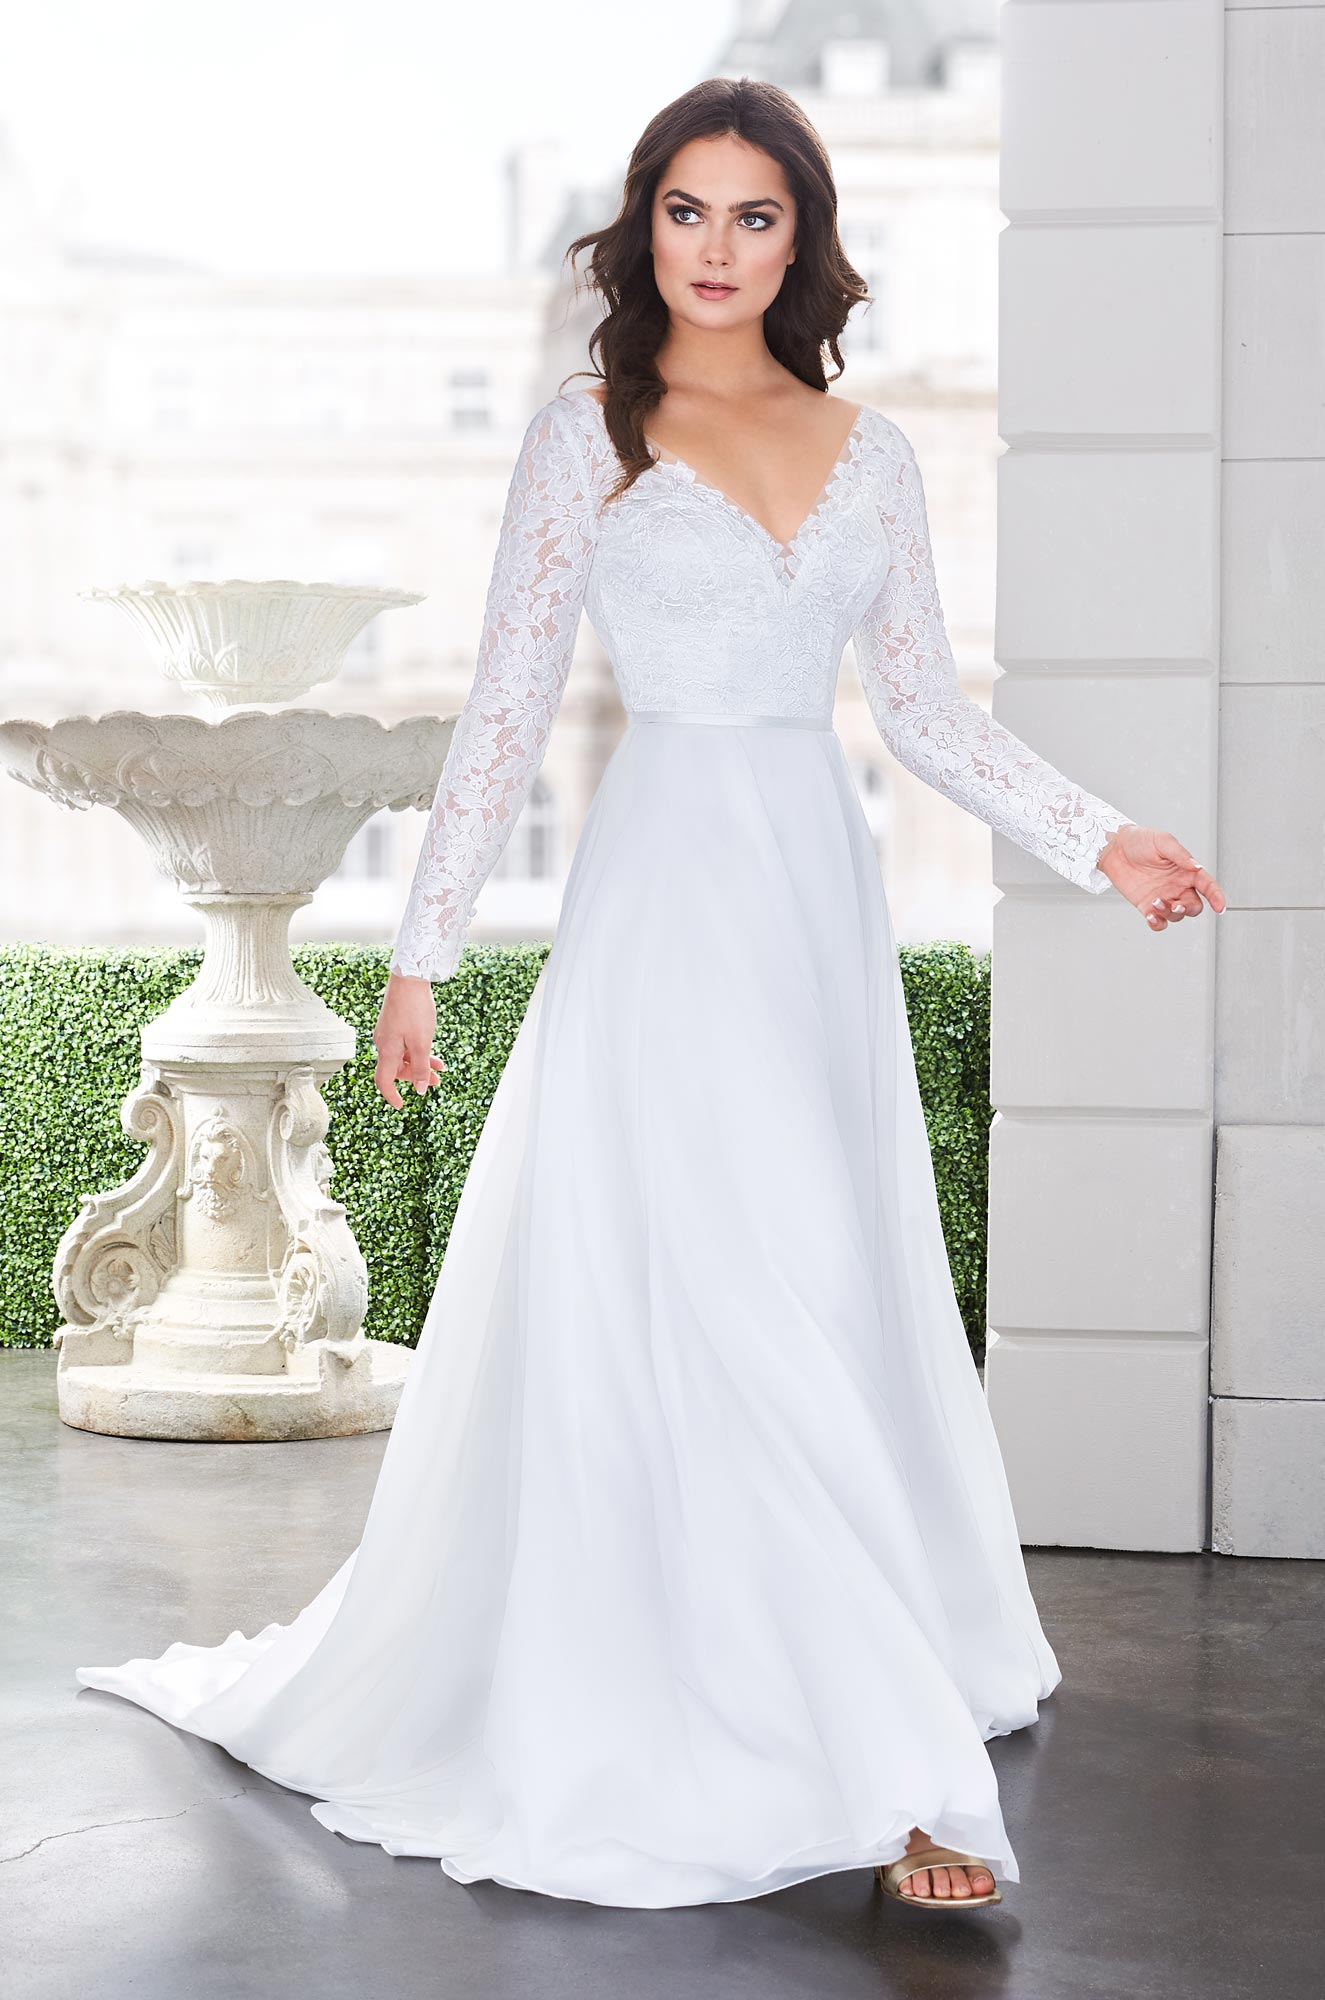 Romantic Lace Sleeve Wedding Dress – Style #4870 | Paloma Blanca